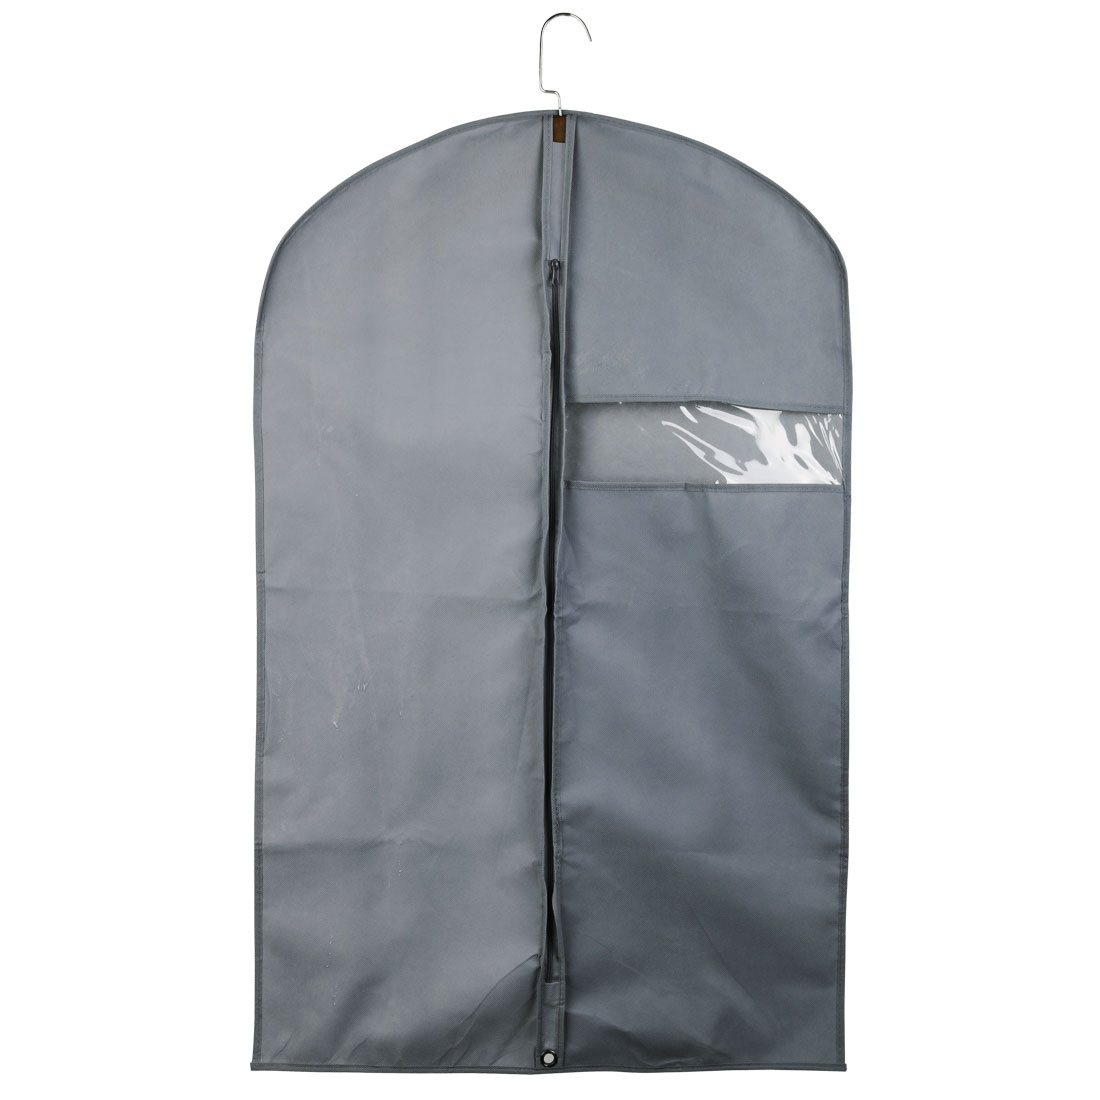 52f14734fc0 Garment Cover Bags Storage Bag Dress Suit Coat Jacket Protector ...